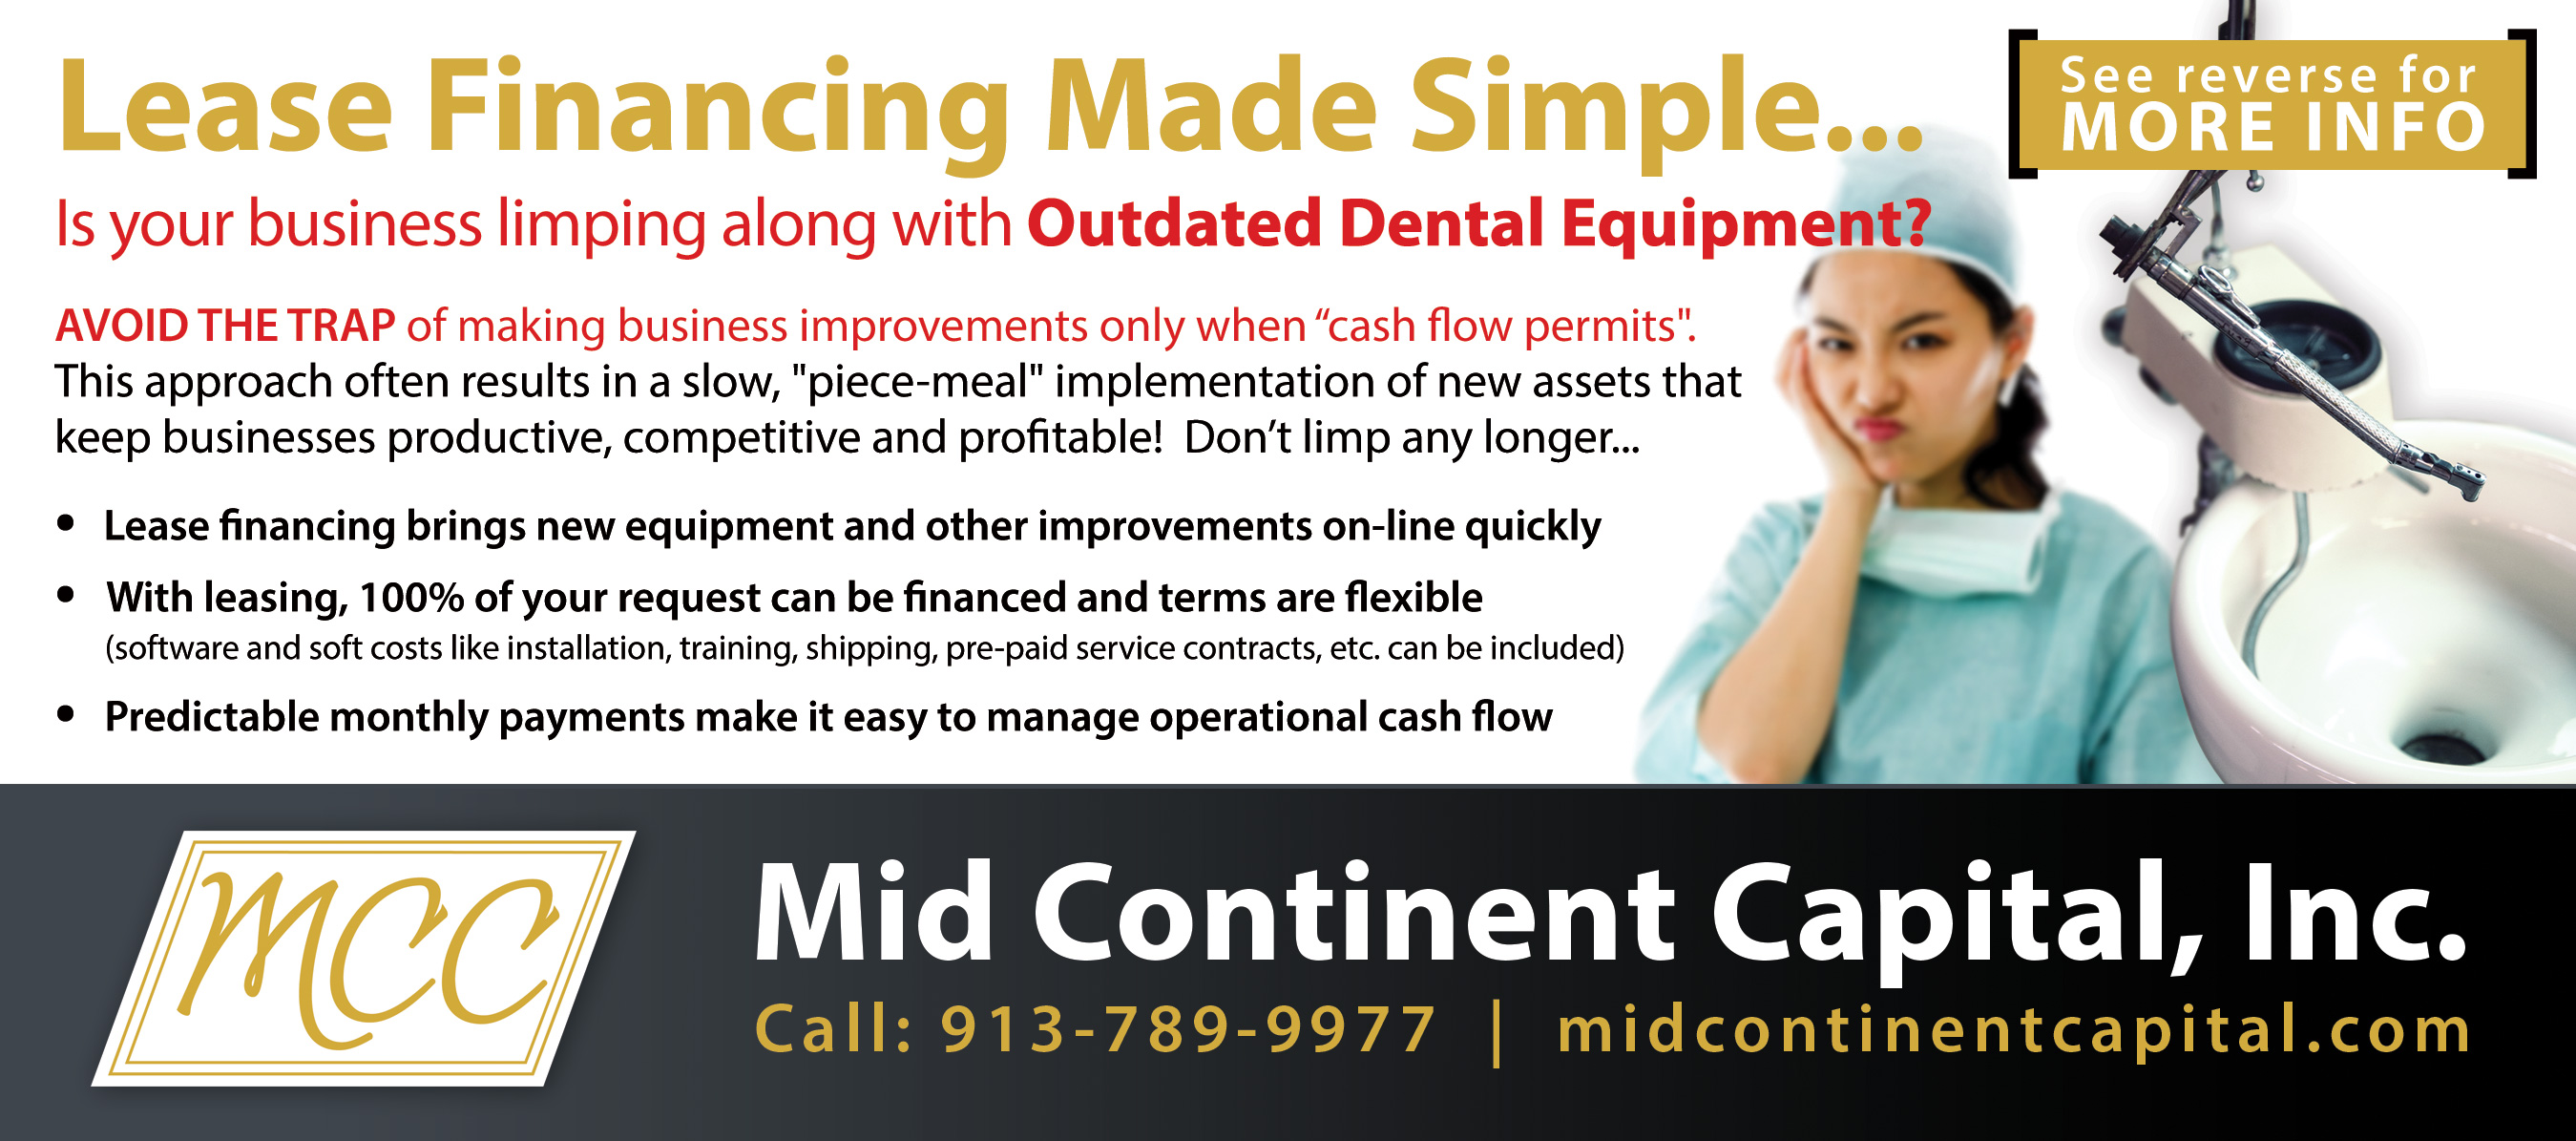 dental lease financing information